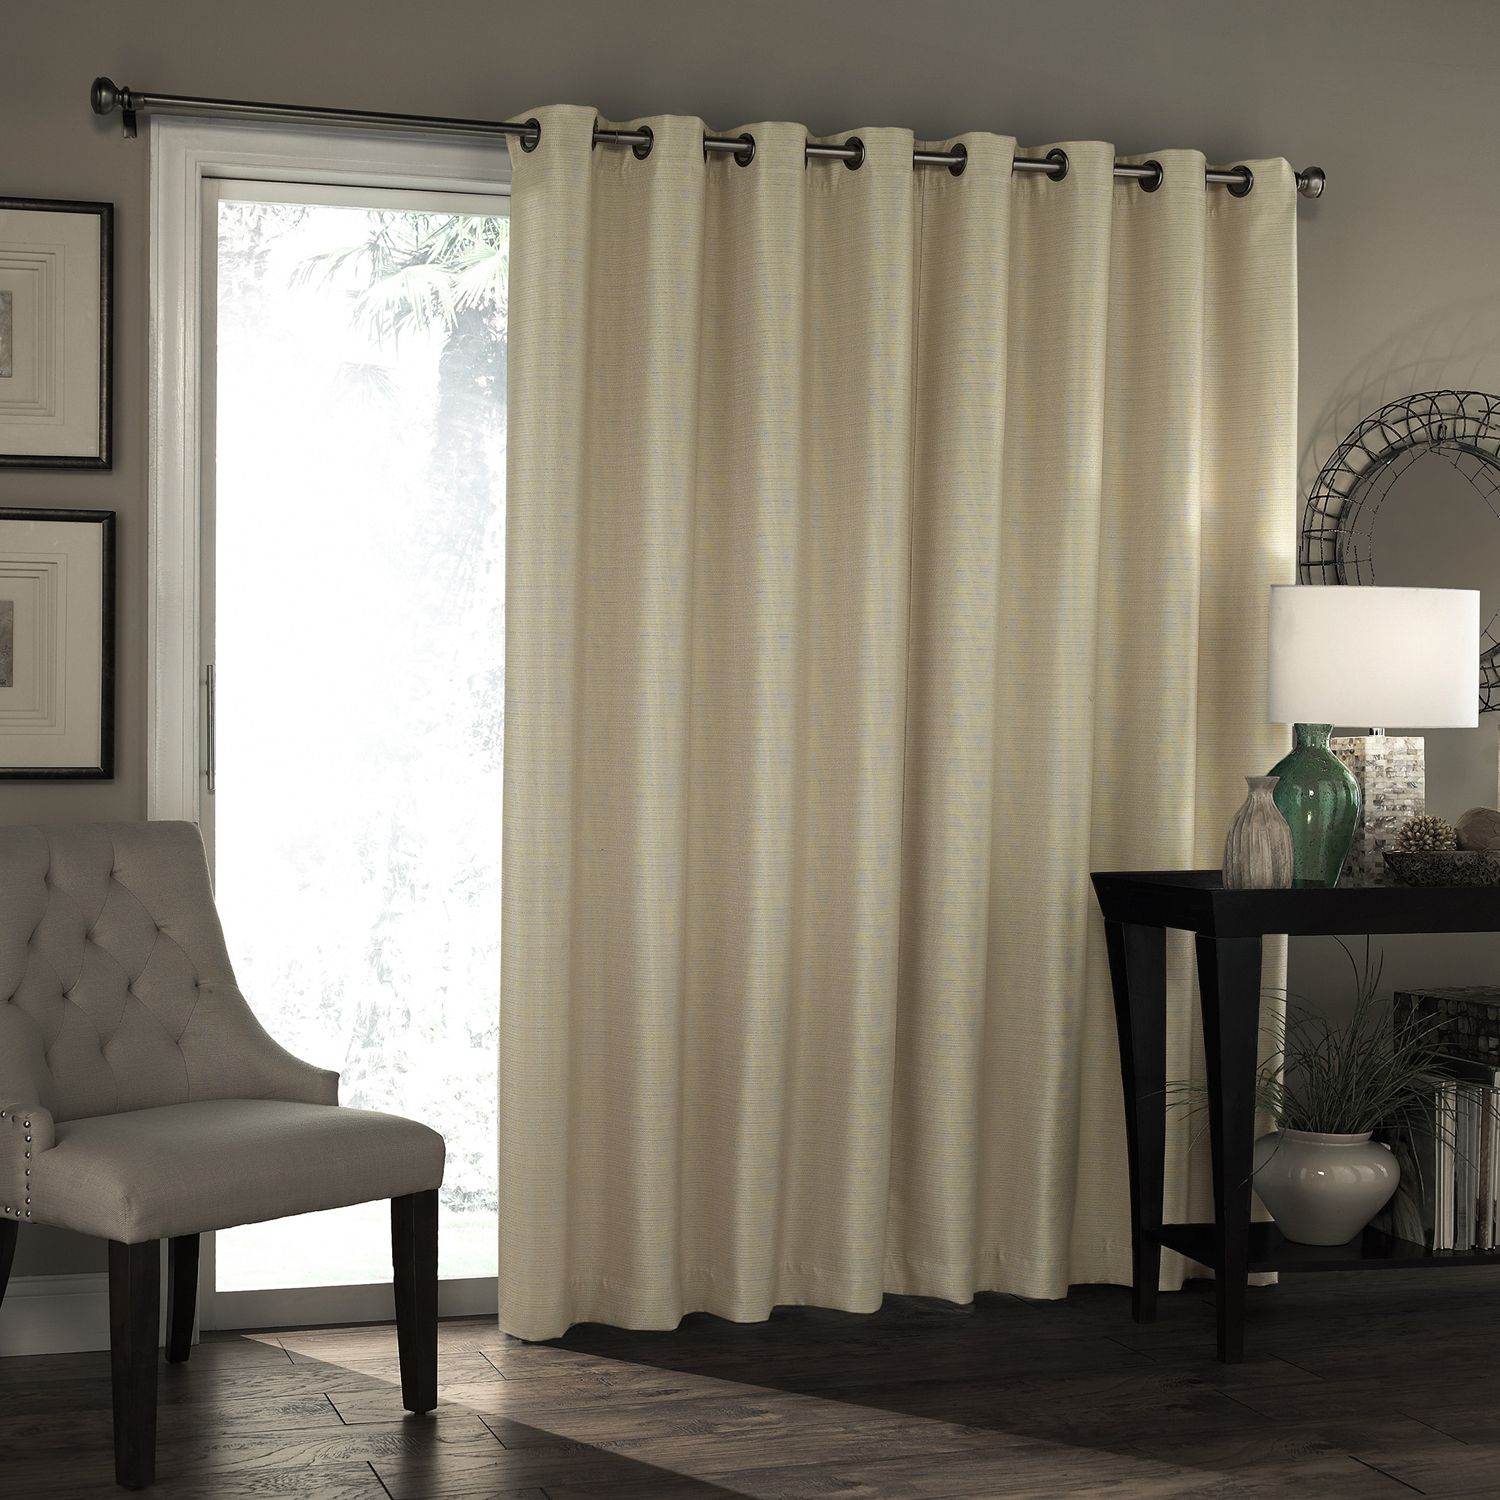 Superieur Eclipse Thermaweave Blackout 1 Panel Bryson Window Curtain